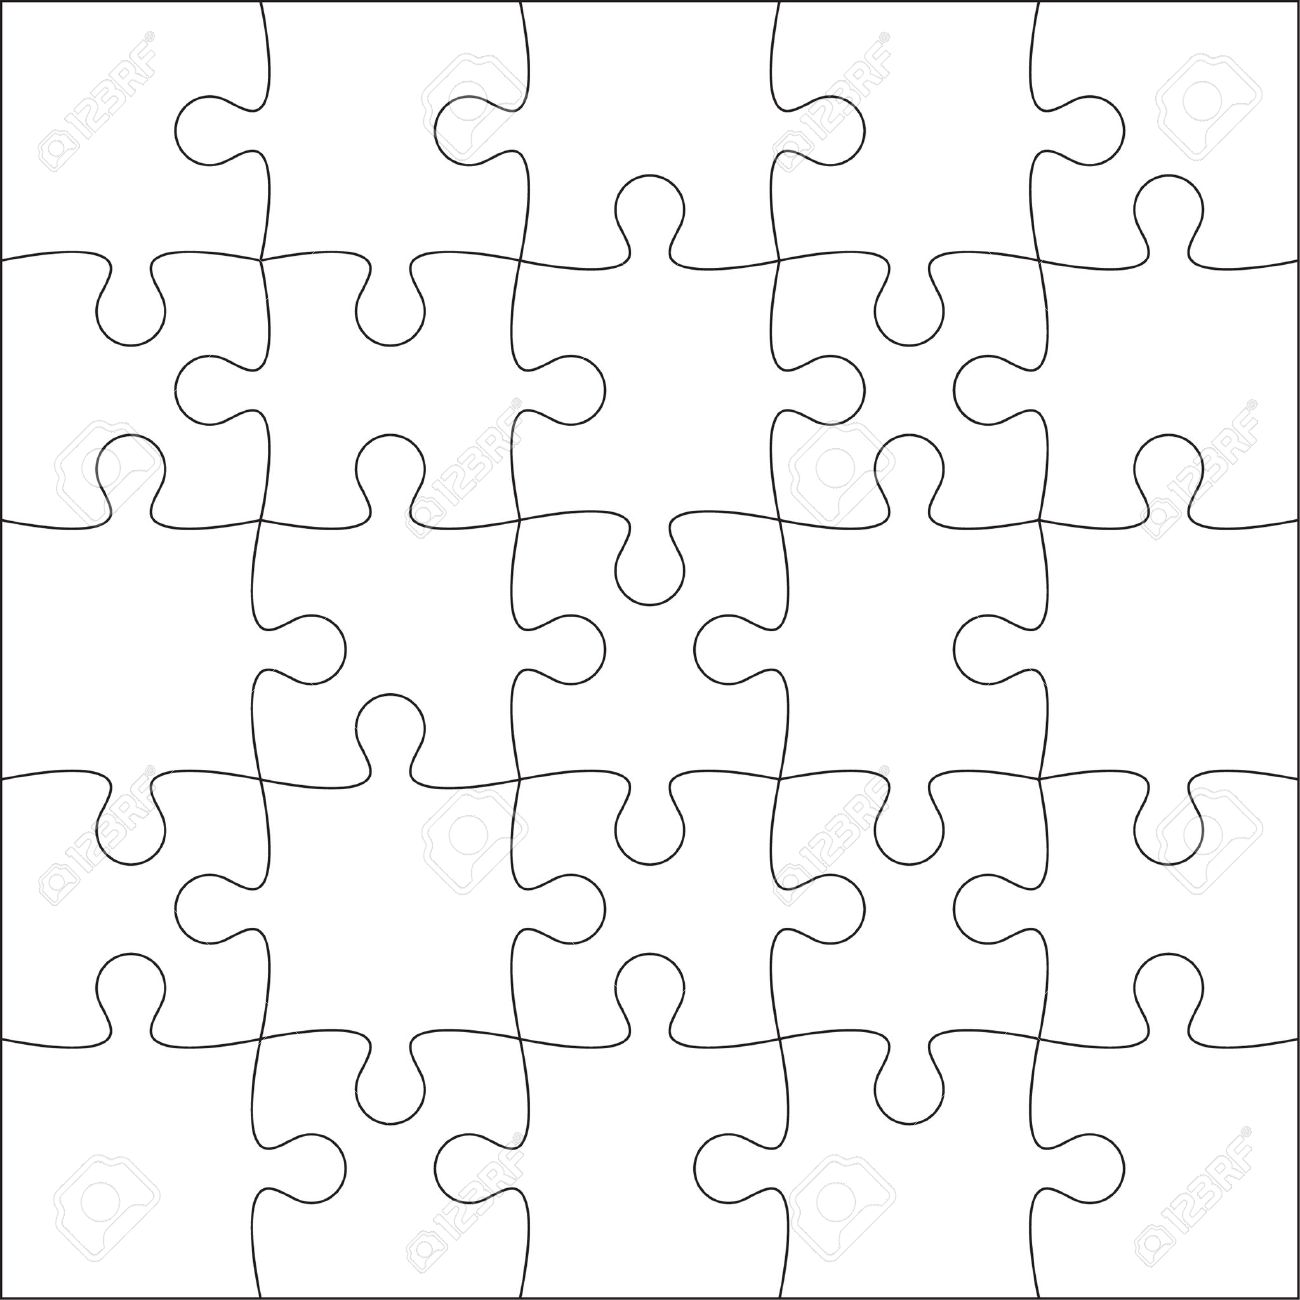 Jigsaw Puzzle Blank Template Or Cutting Guidelines Of 20 Pieces – Blank Puzzle Template